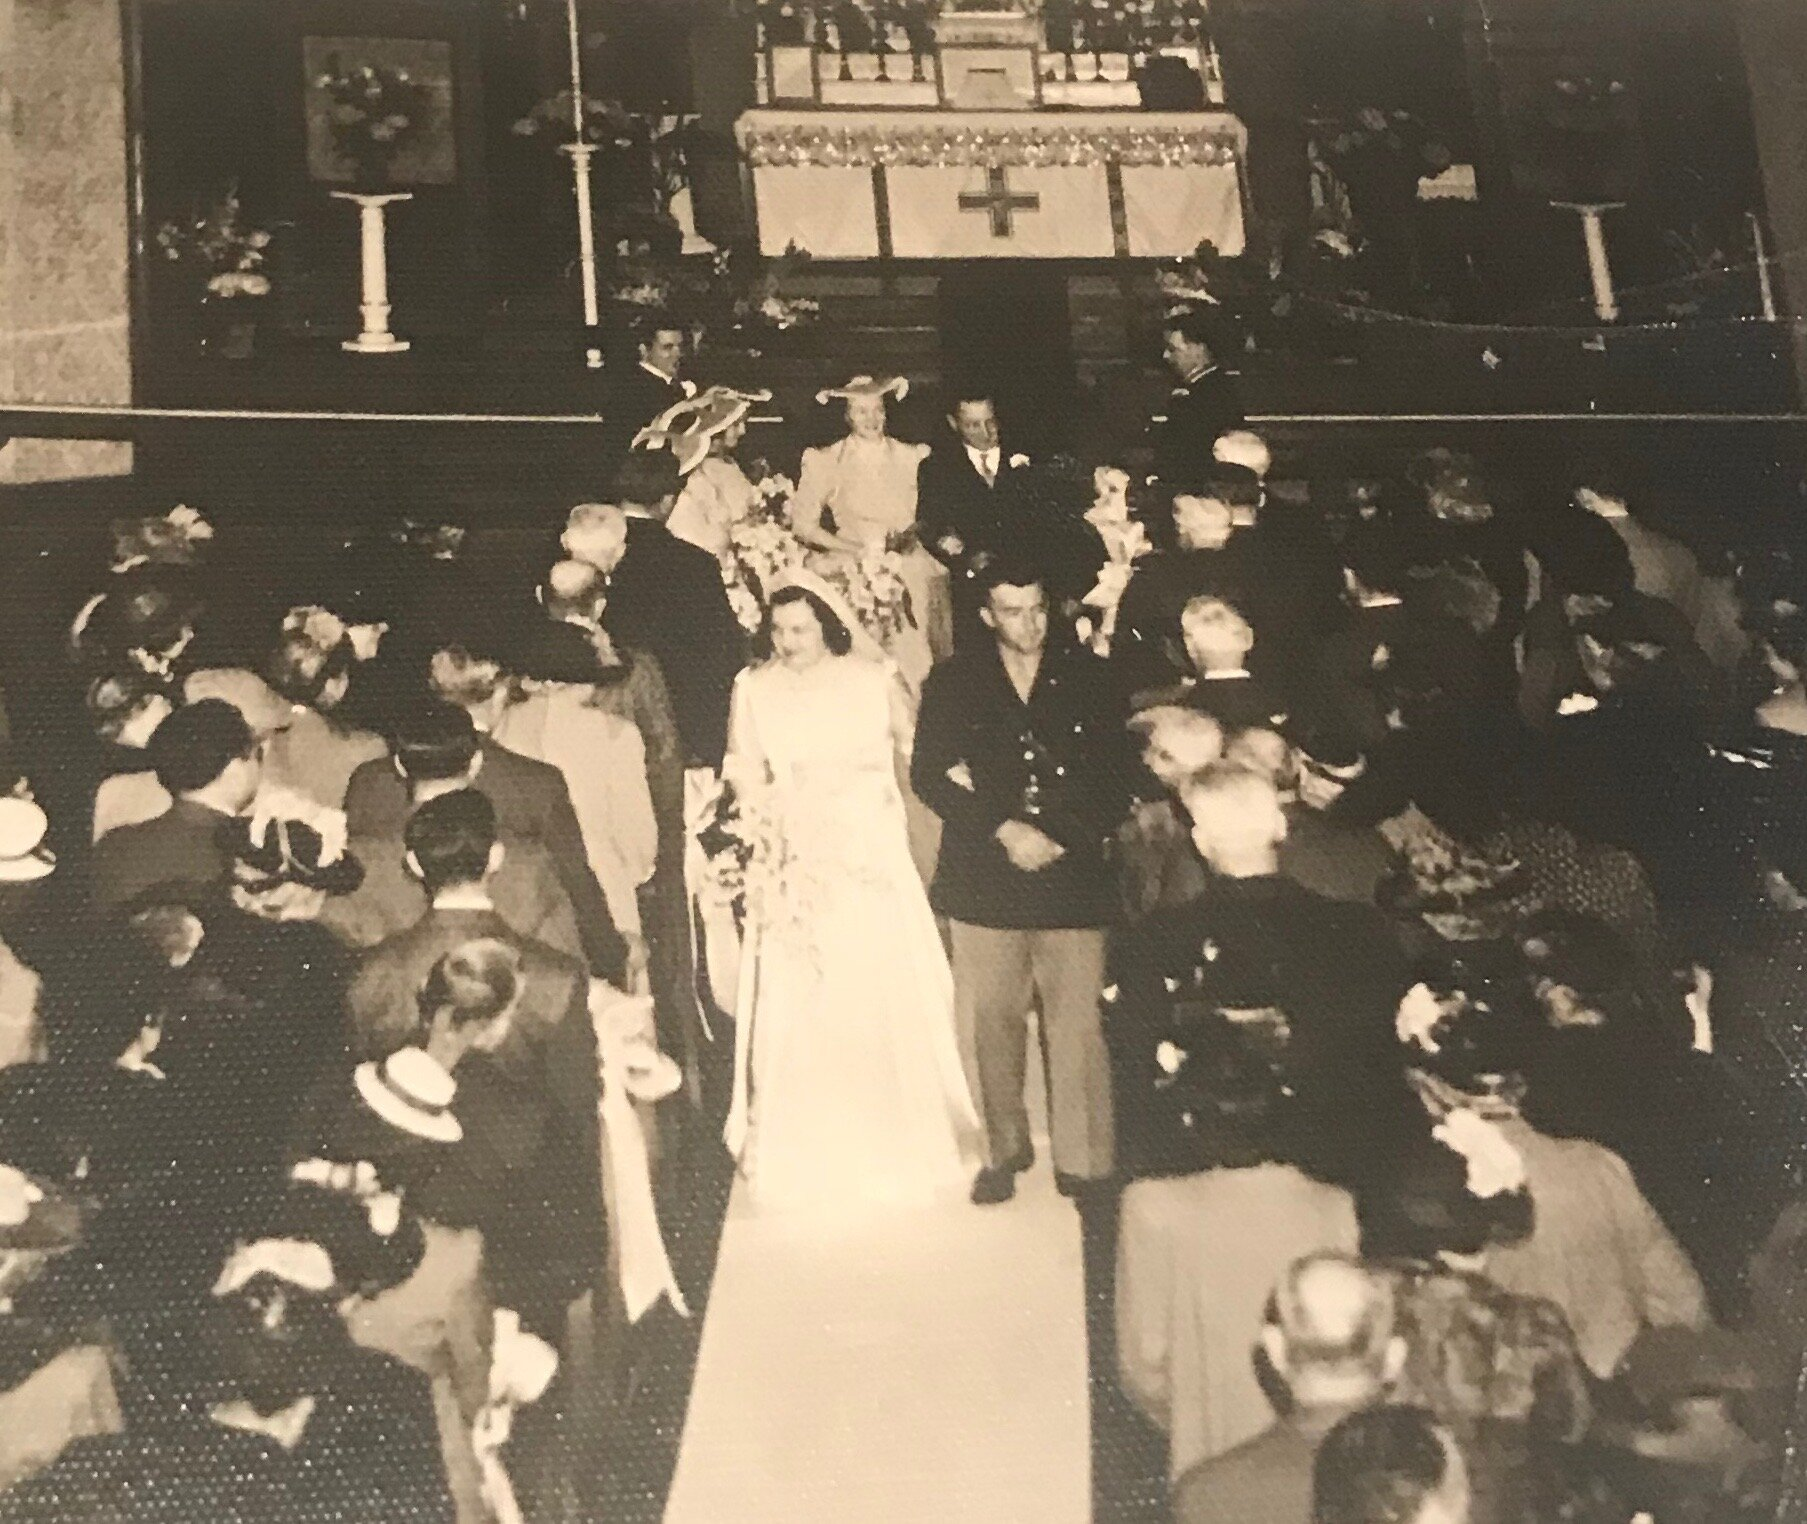 Wedding of Alice M. Brennan and William F. Rock at St. Michael's Church on April 6, 1942.  Wedding photos courtesy or Mary Alice and Paul Rock